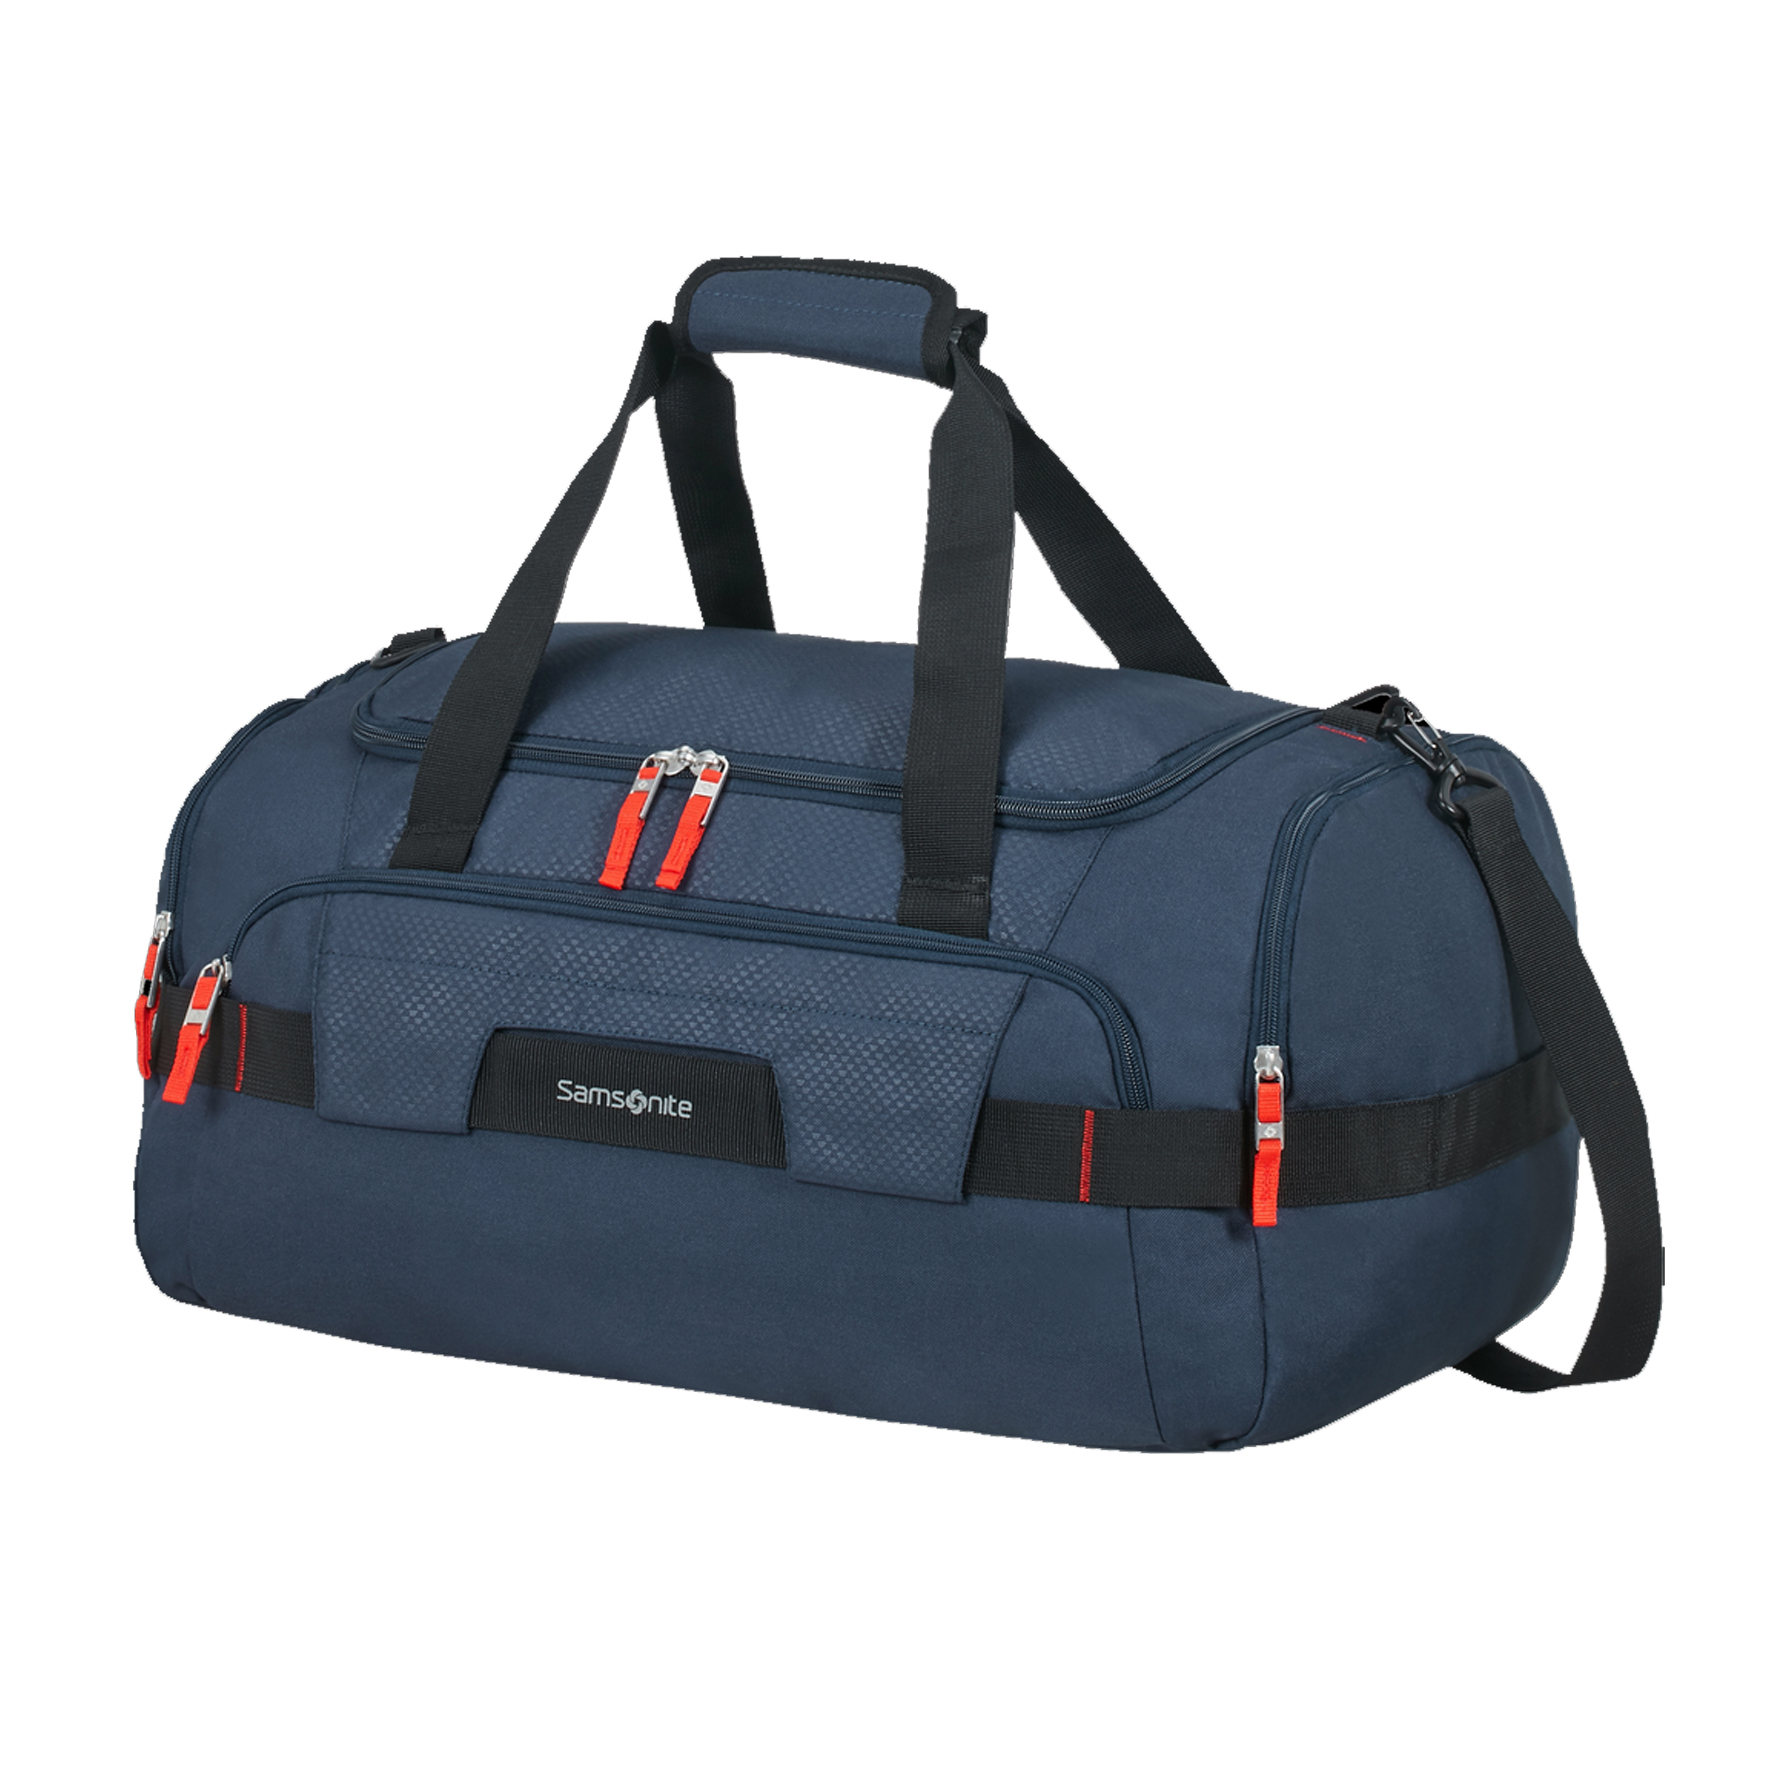 Sac Week End Sonora 100% matière eco responsable